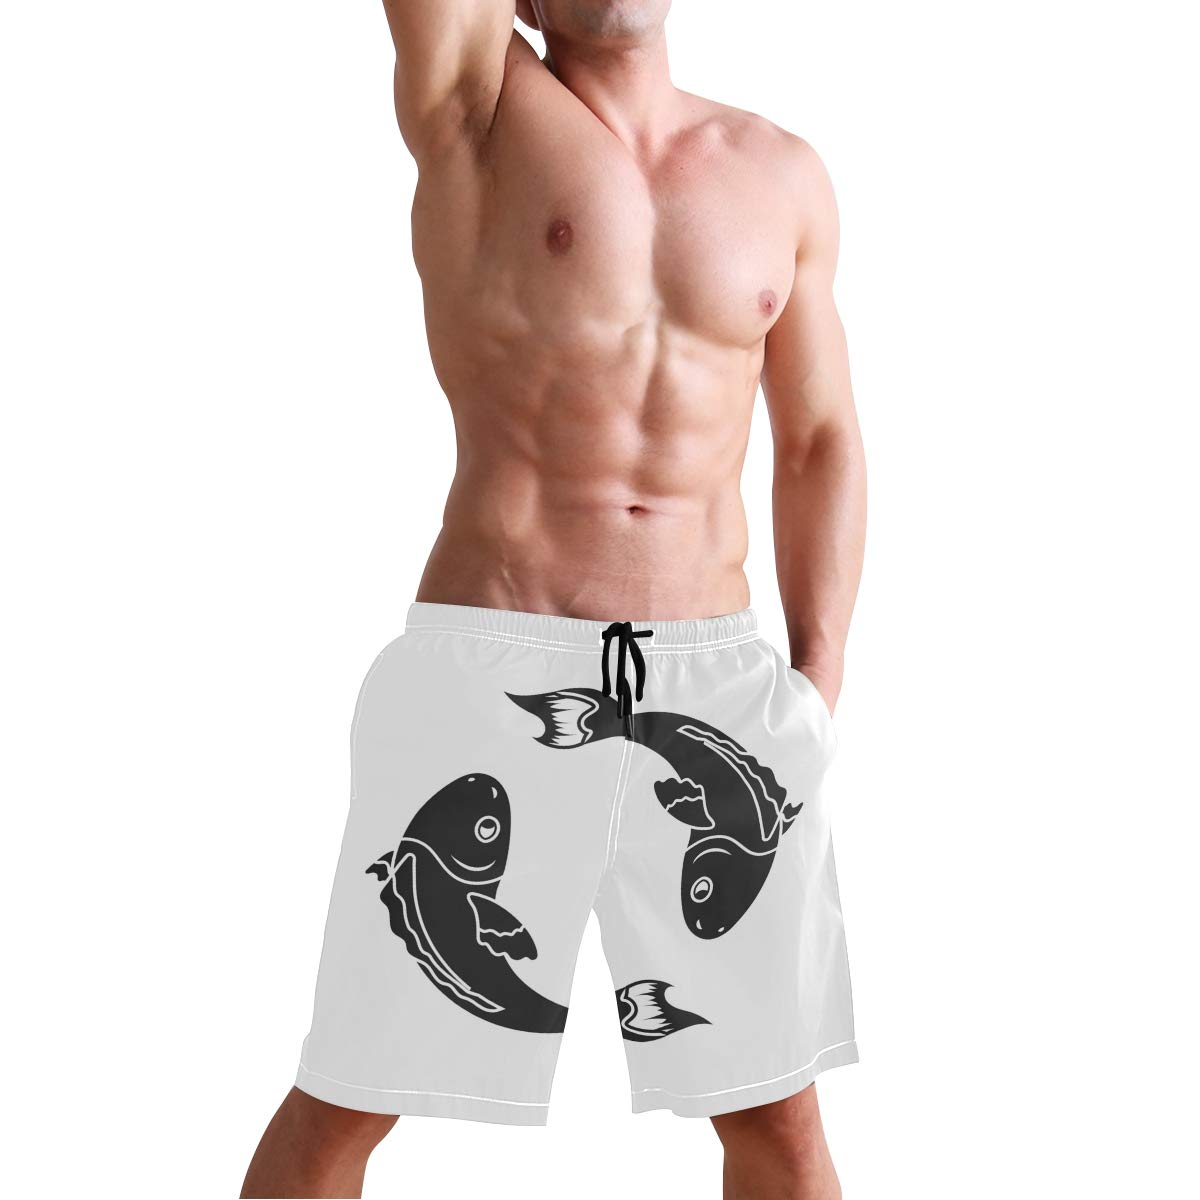 Mens Beach Swim Trunks Black and White Koi Fish Boxer Swimsuit Underwear Board Shorts with Pocket